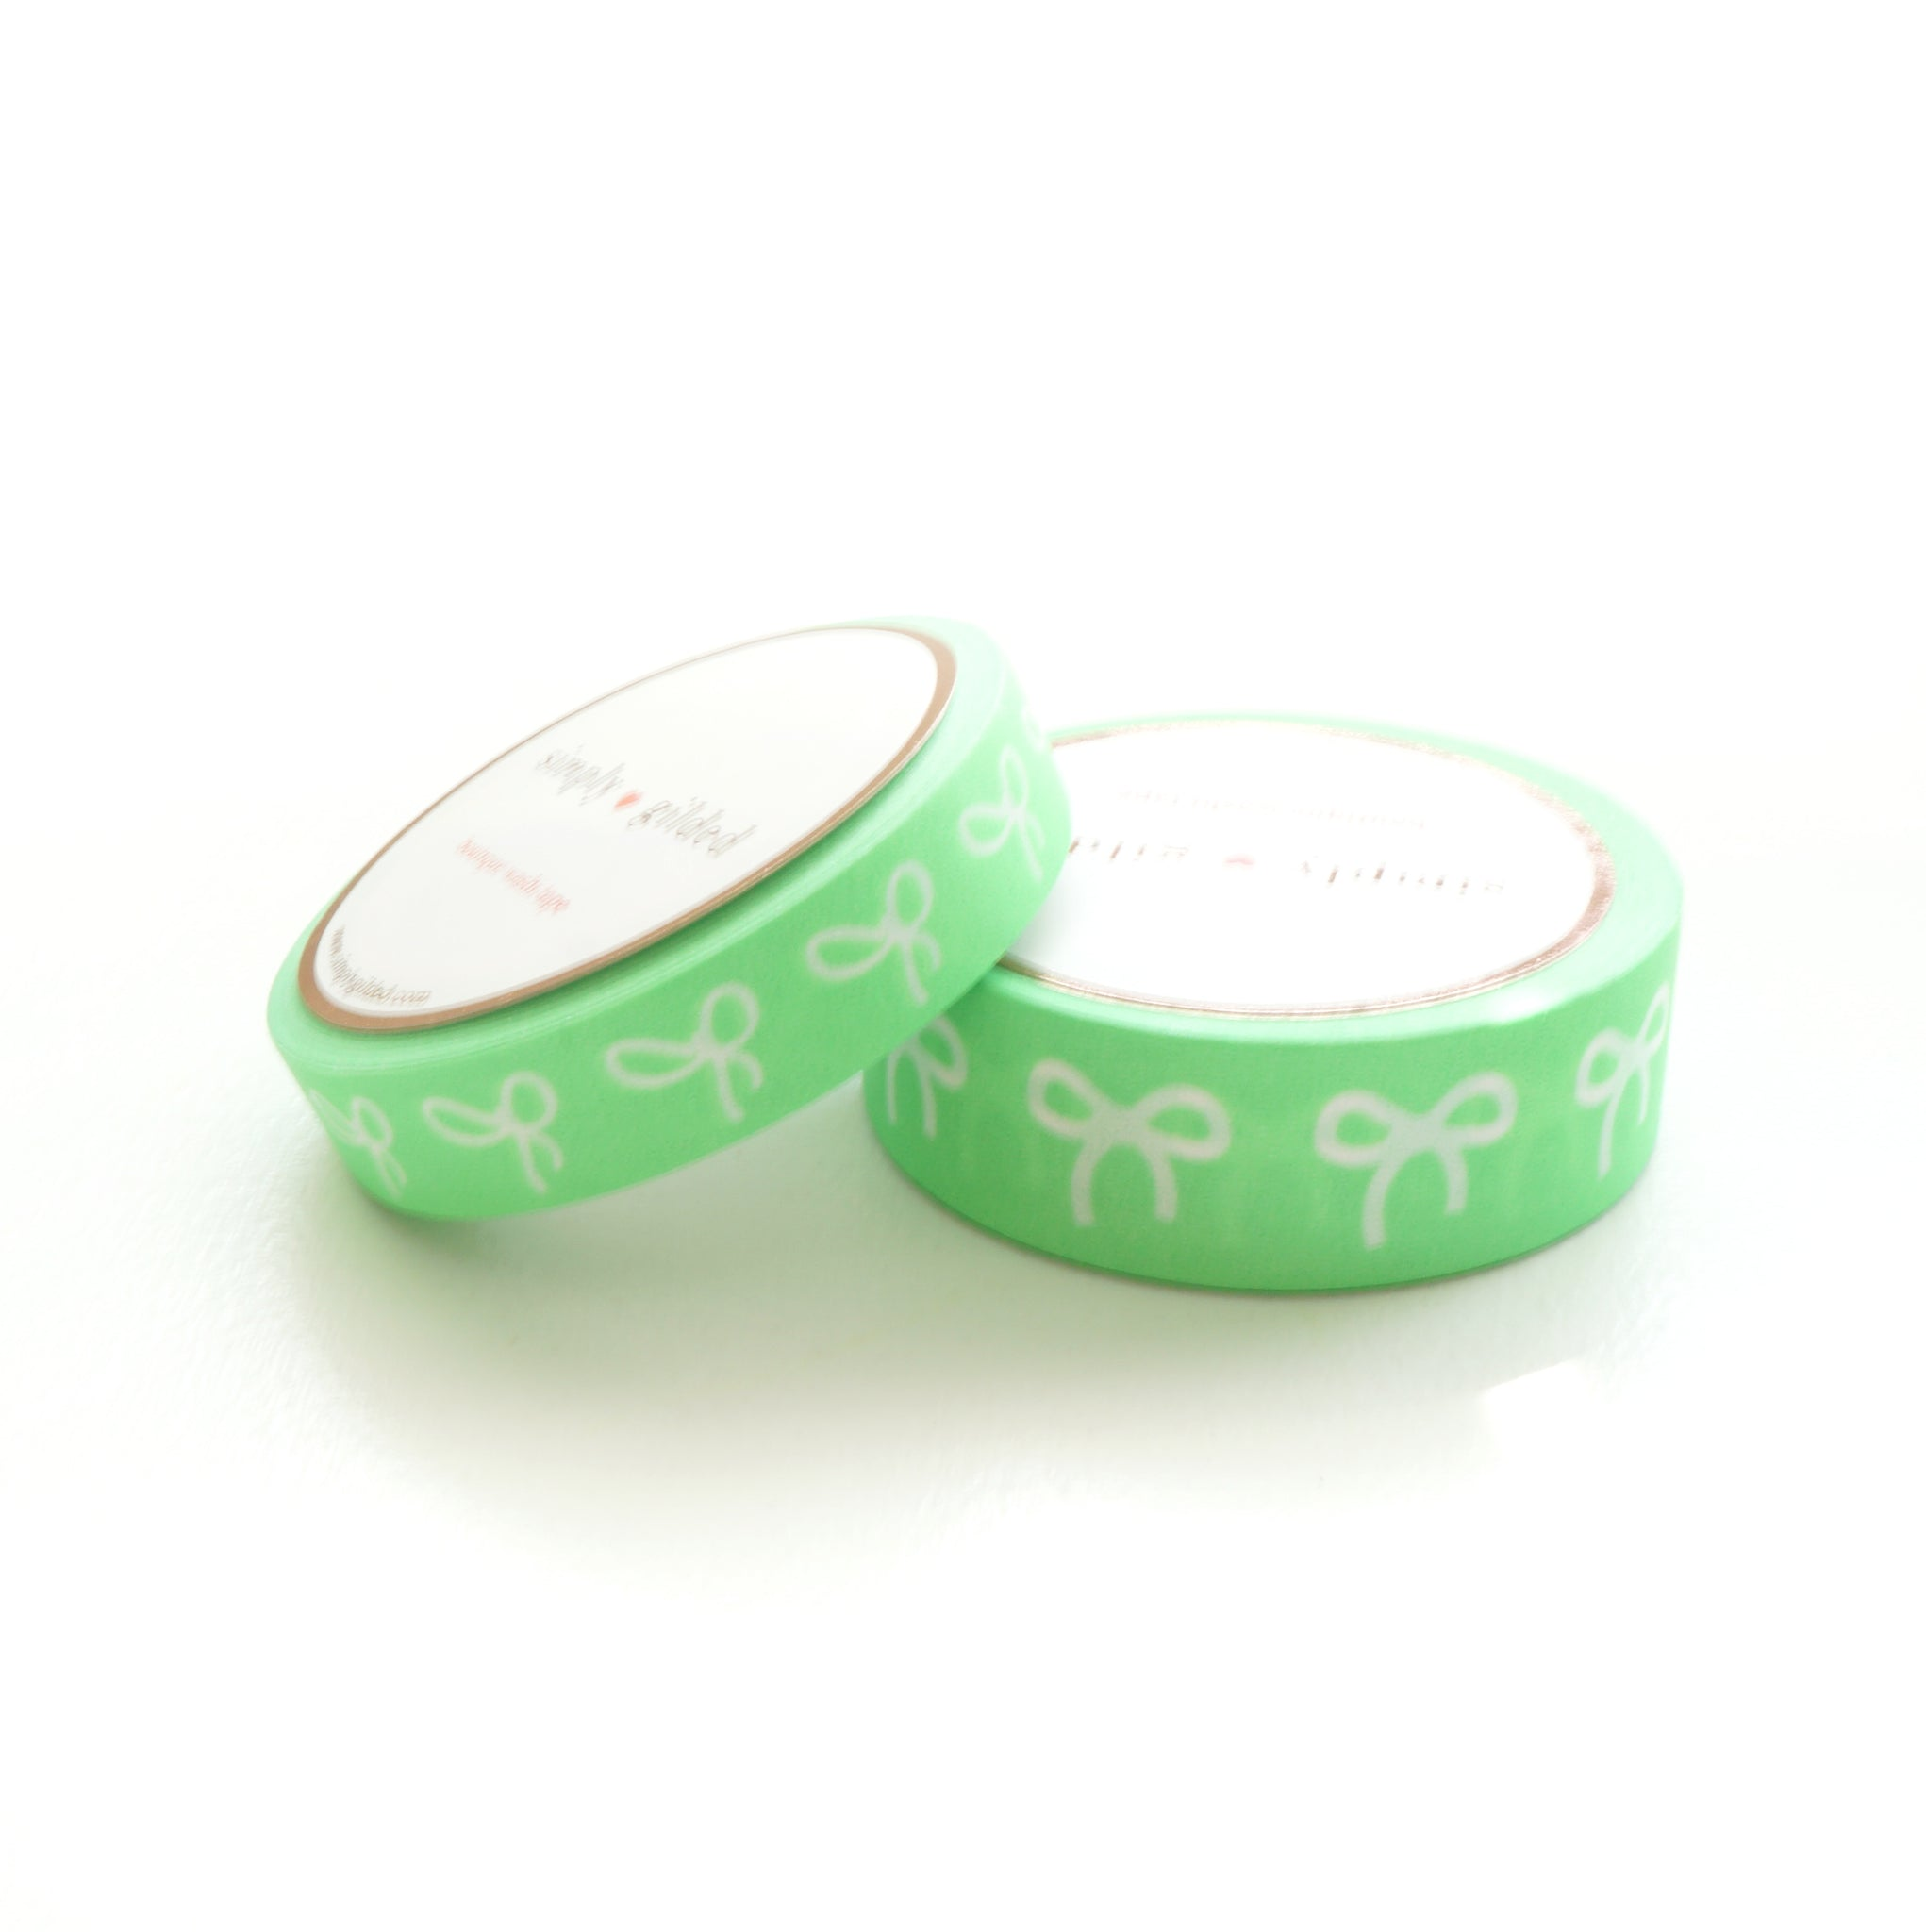 WASHI TAPE 15/10mm BOW set - Neon GREEN + white bows (May 29th Release)